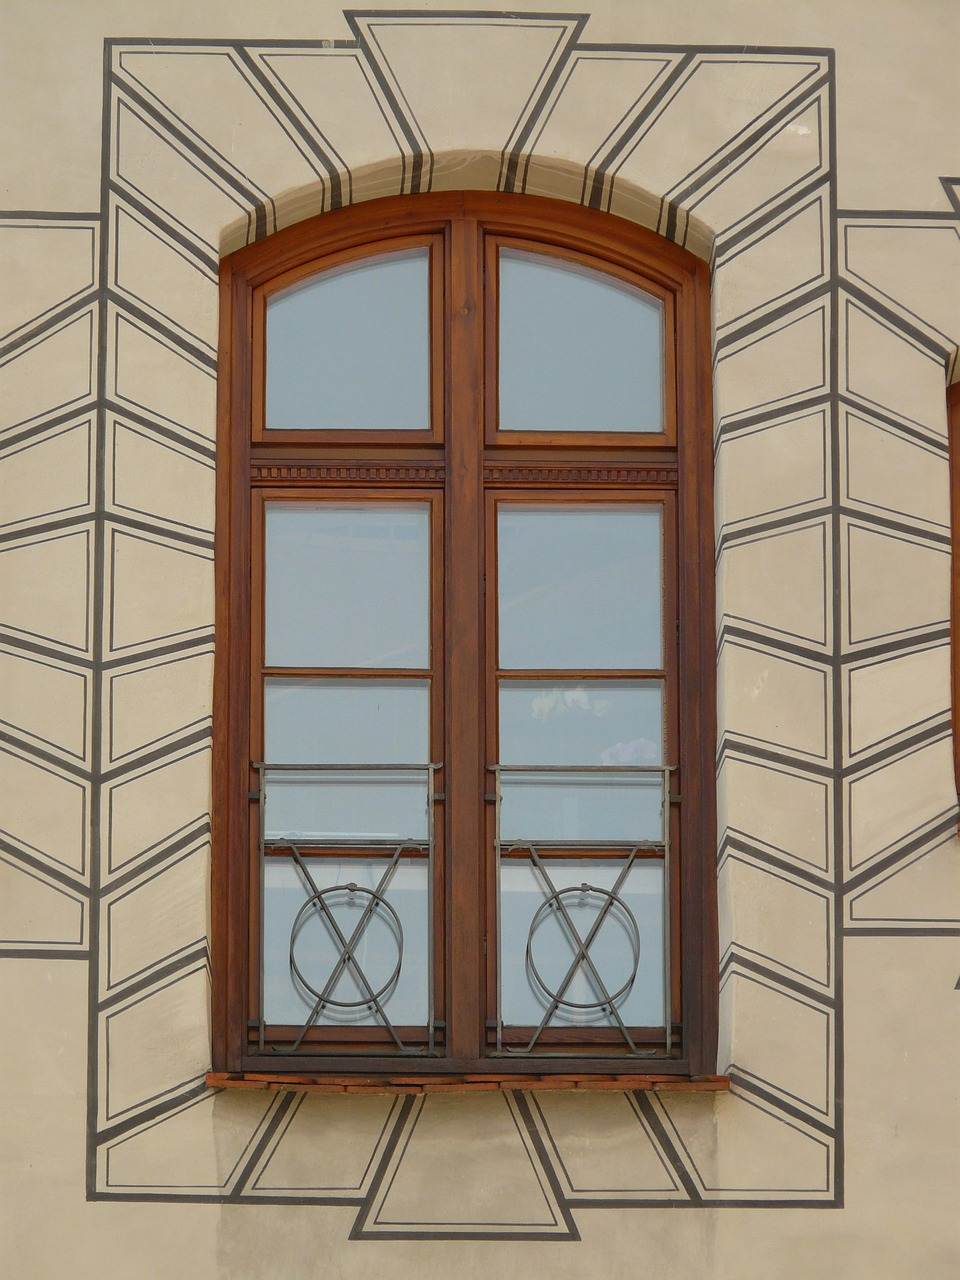 window wall facade free photo